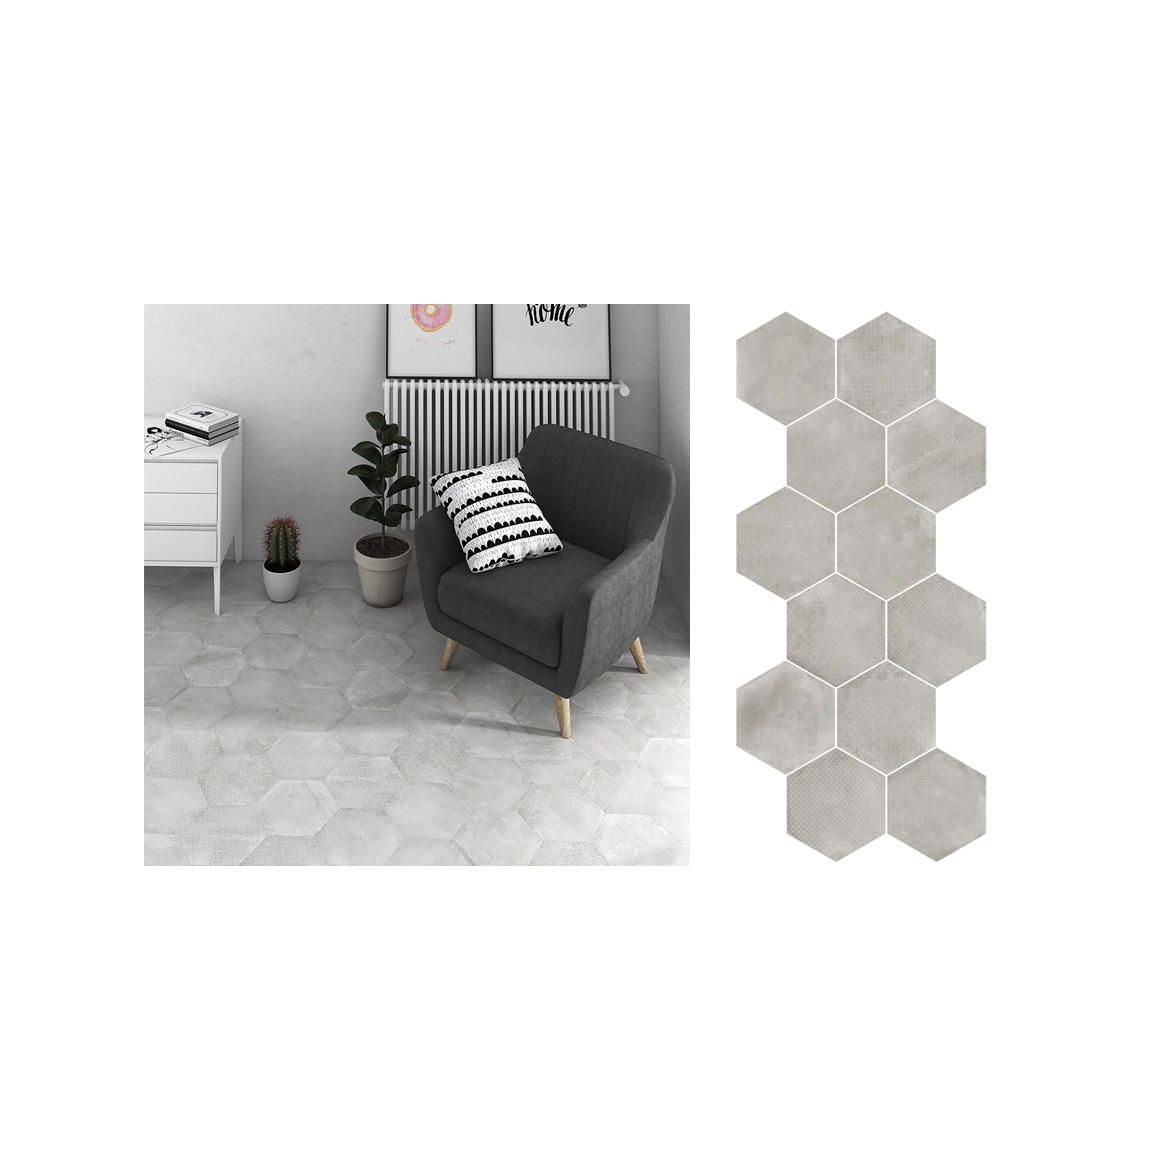 https://cerdesign.pl/1915-large_default/p3365-equipe-urban-hexagon-silver-292x254-23514.jpg